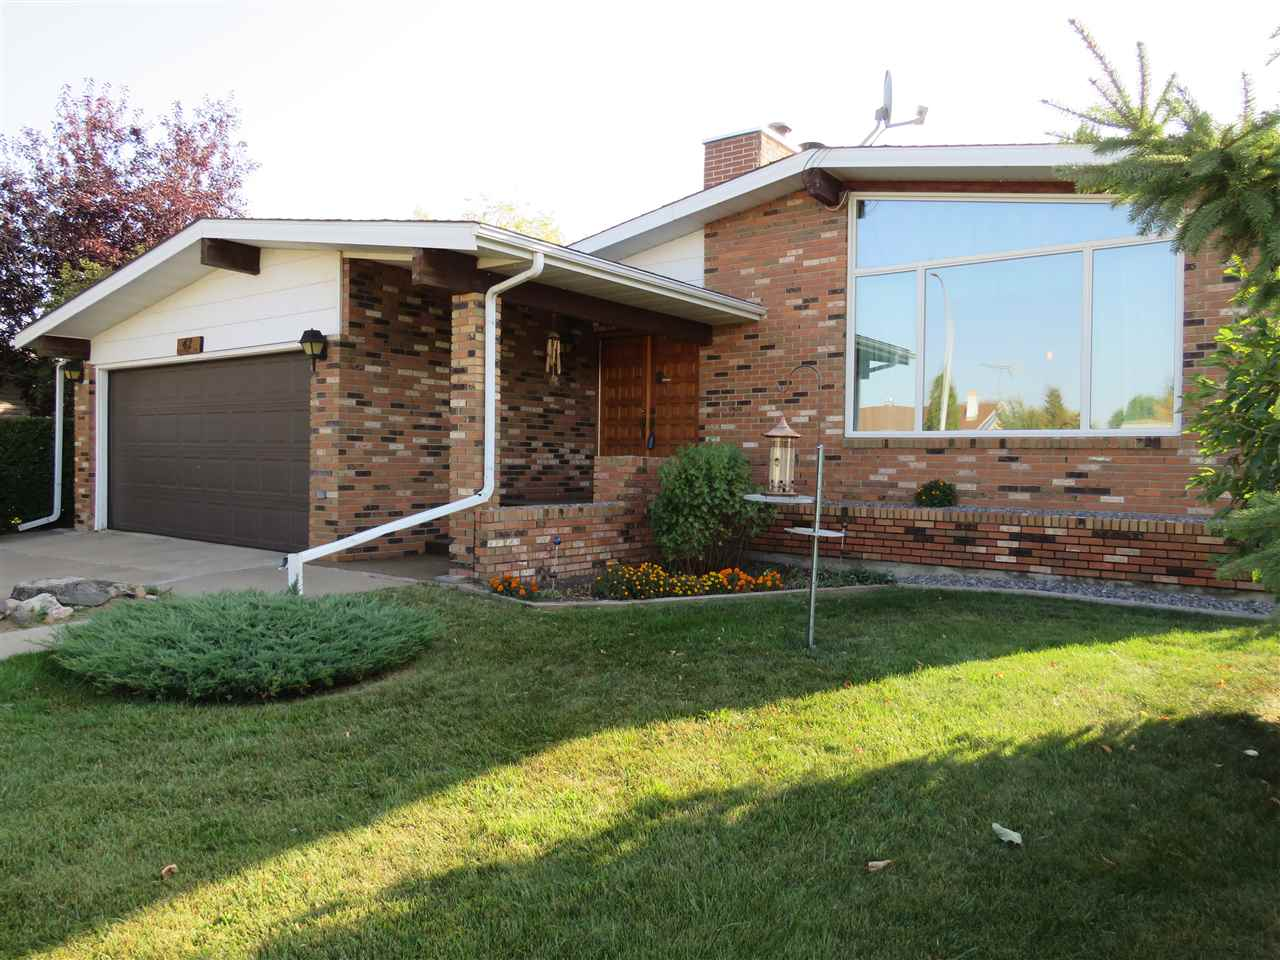 1978 custom built 1336 sq ft bungalow with a double attached garage situated on beautifully treed, meticulously manicured and maintained fenced, landscaped lot; located in the Town of Tofield. Very nice neighborhood and family home with both levels developed containing a total of 4 bedrooms (3 on main), 3 bathrooms and many other special features throughout. Including a functional and appealing open floor plan with a large kitchen and dinette area, formal dining room, living room with open beam ceiling and a custom built brick faced wood burning fireplace, large main floor laundry room (new flooring 2017) with access to the attached garage and the 10x16 attached sun room. Lower level contains a large family room with free standing fireplace, bar area, additional bedroom and bathroom, and ample storage throughout. Attractive curb appeal features a brick front facing exterior, chain link fencing, 2 storage sheds (1 used as kid?s playhouse); all this plus central air conditioning. Excellent family home.